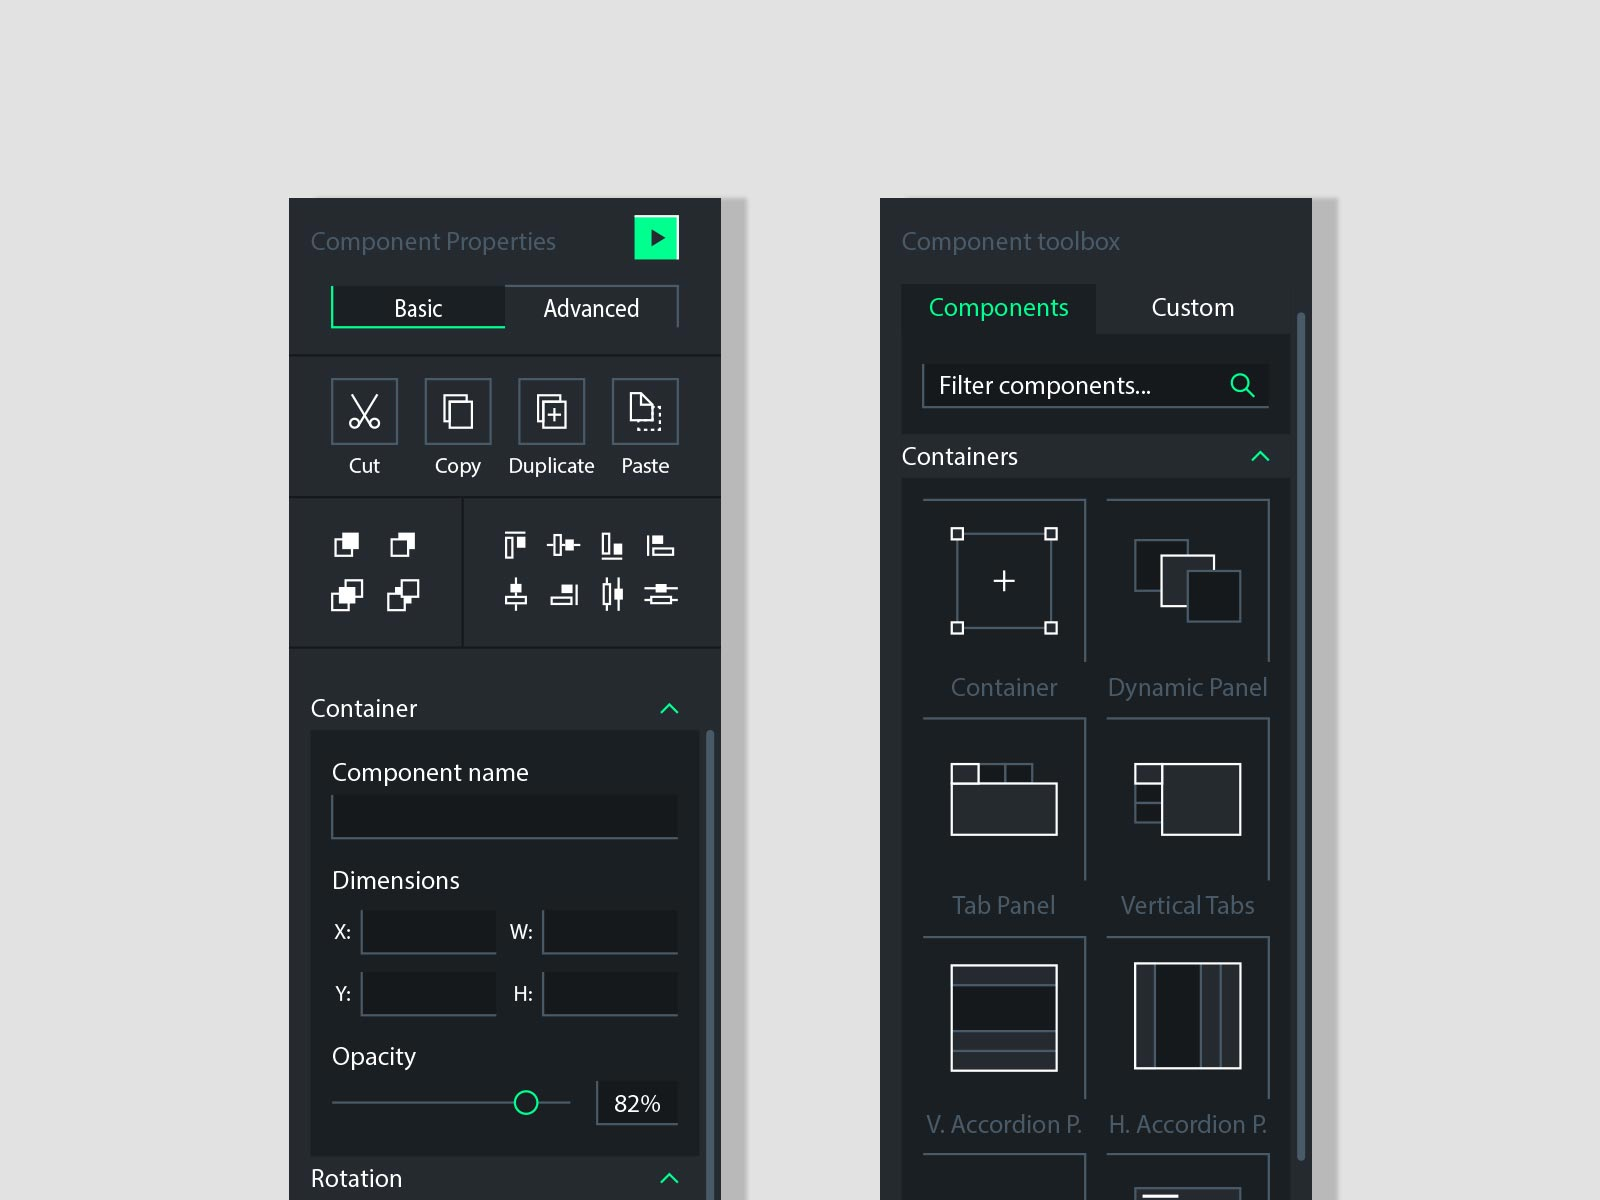 ux app properties settings ui prototype mockup tool design